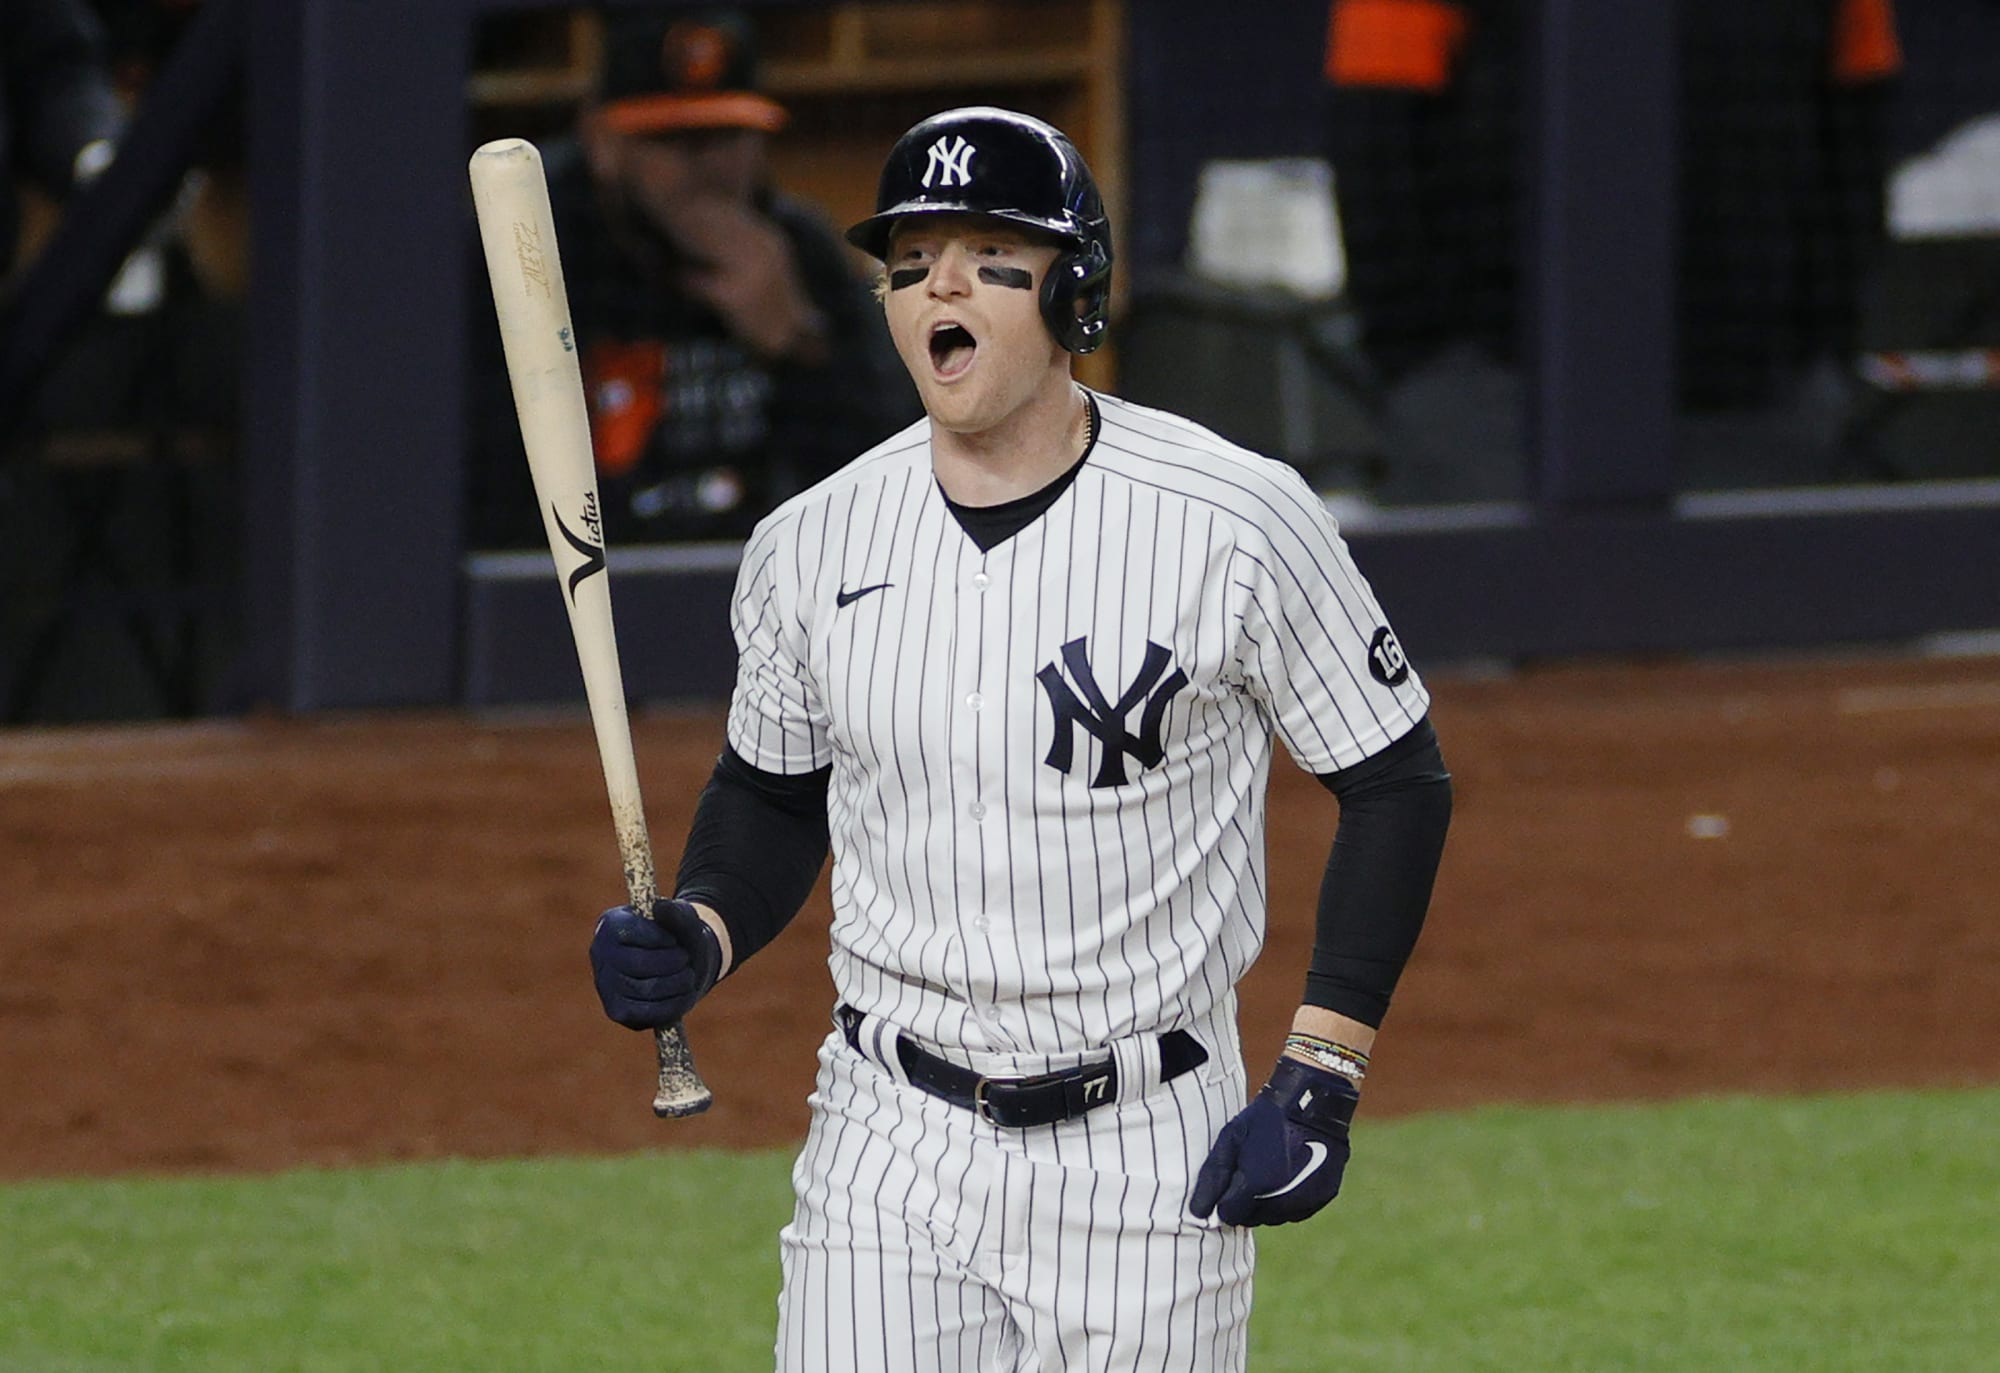 Yankees fans still skeptical after Aaron Boone's Clint Frazier comments